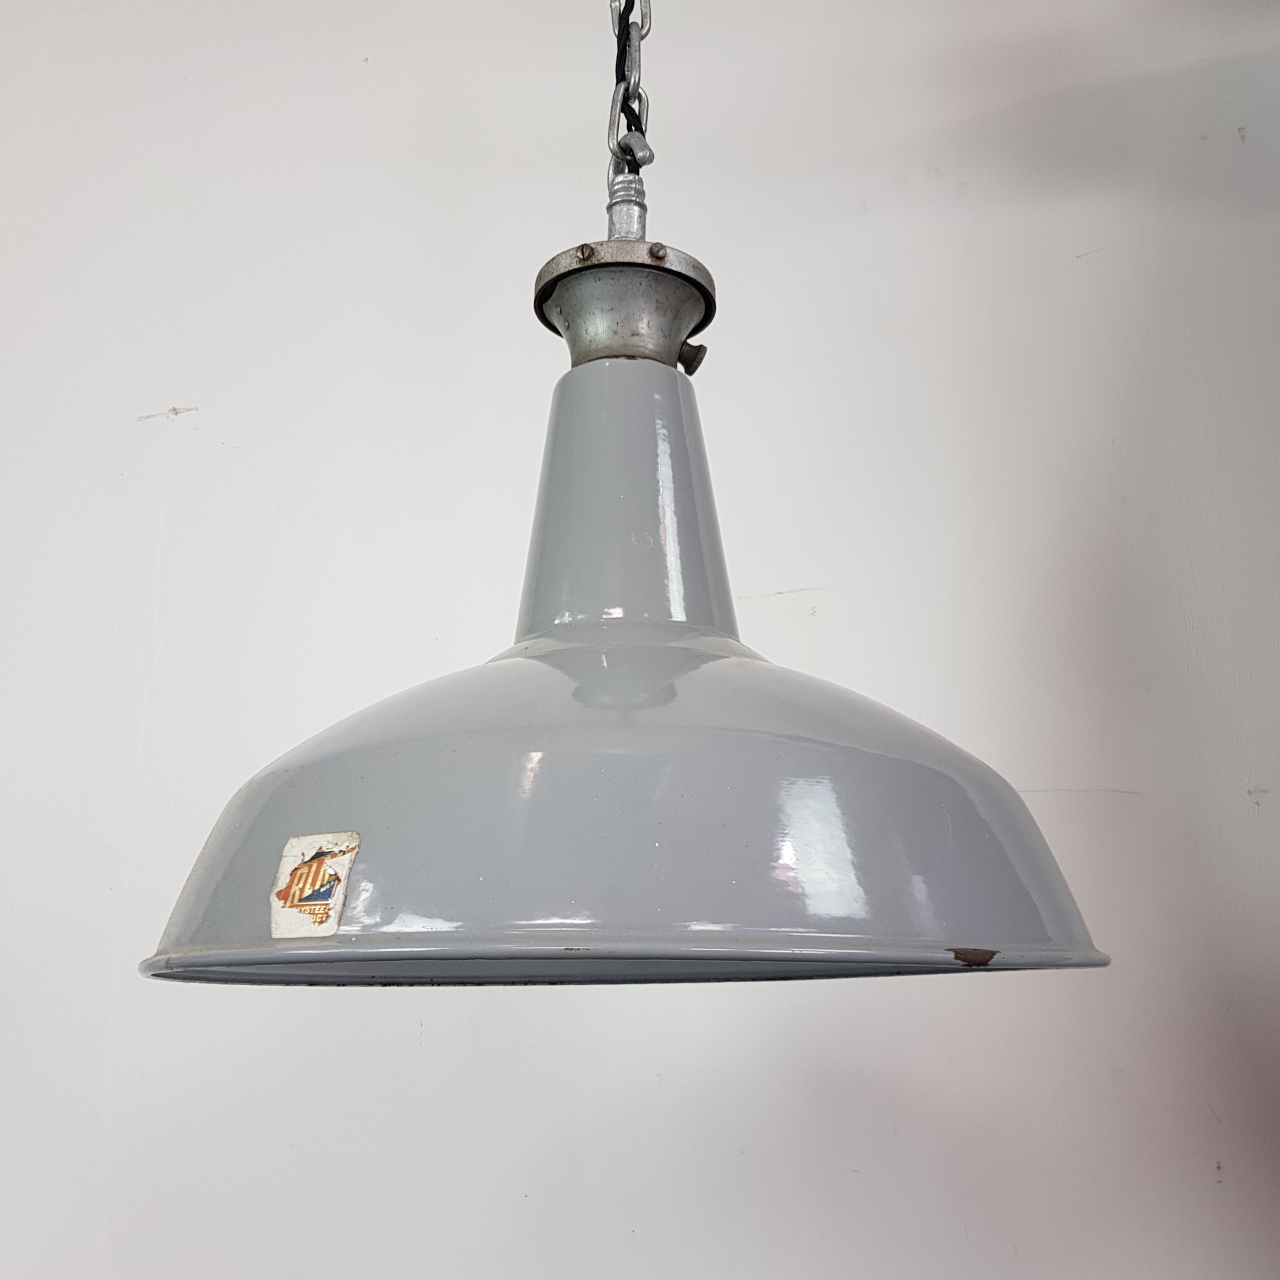 Vintage Industrial Enamel Pendant Light: Vintage Large Grey Enamel Industrial Pendant Light